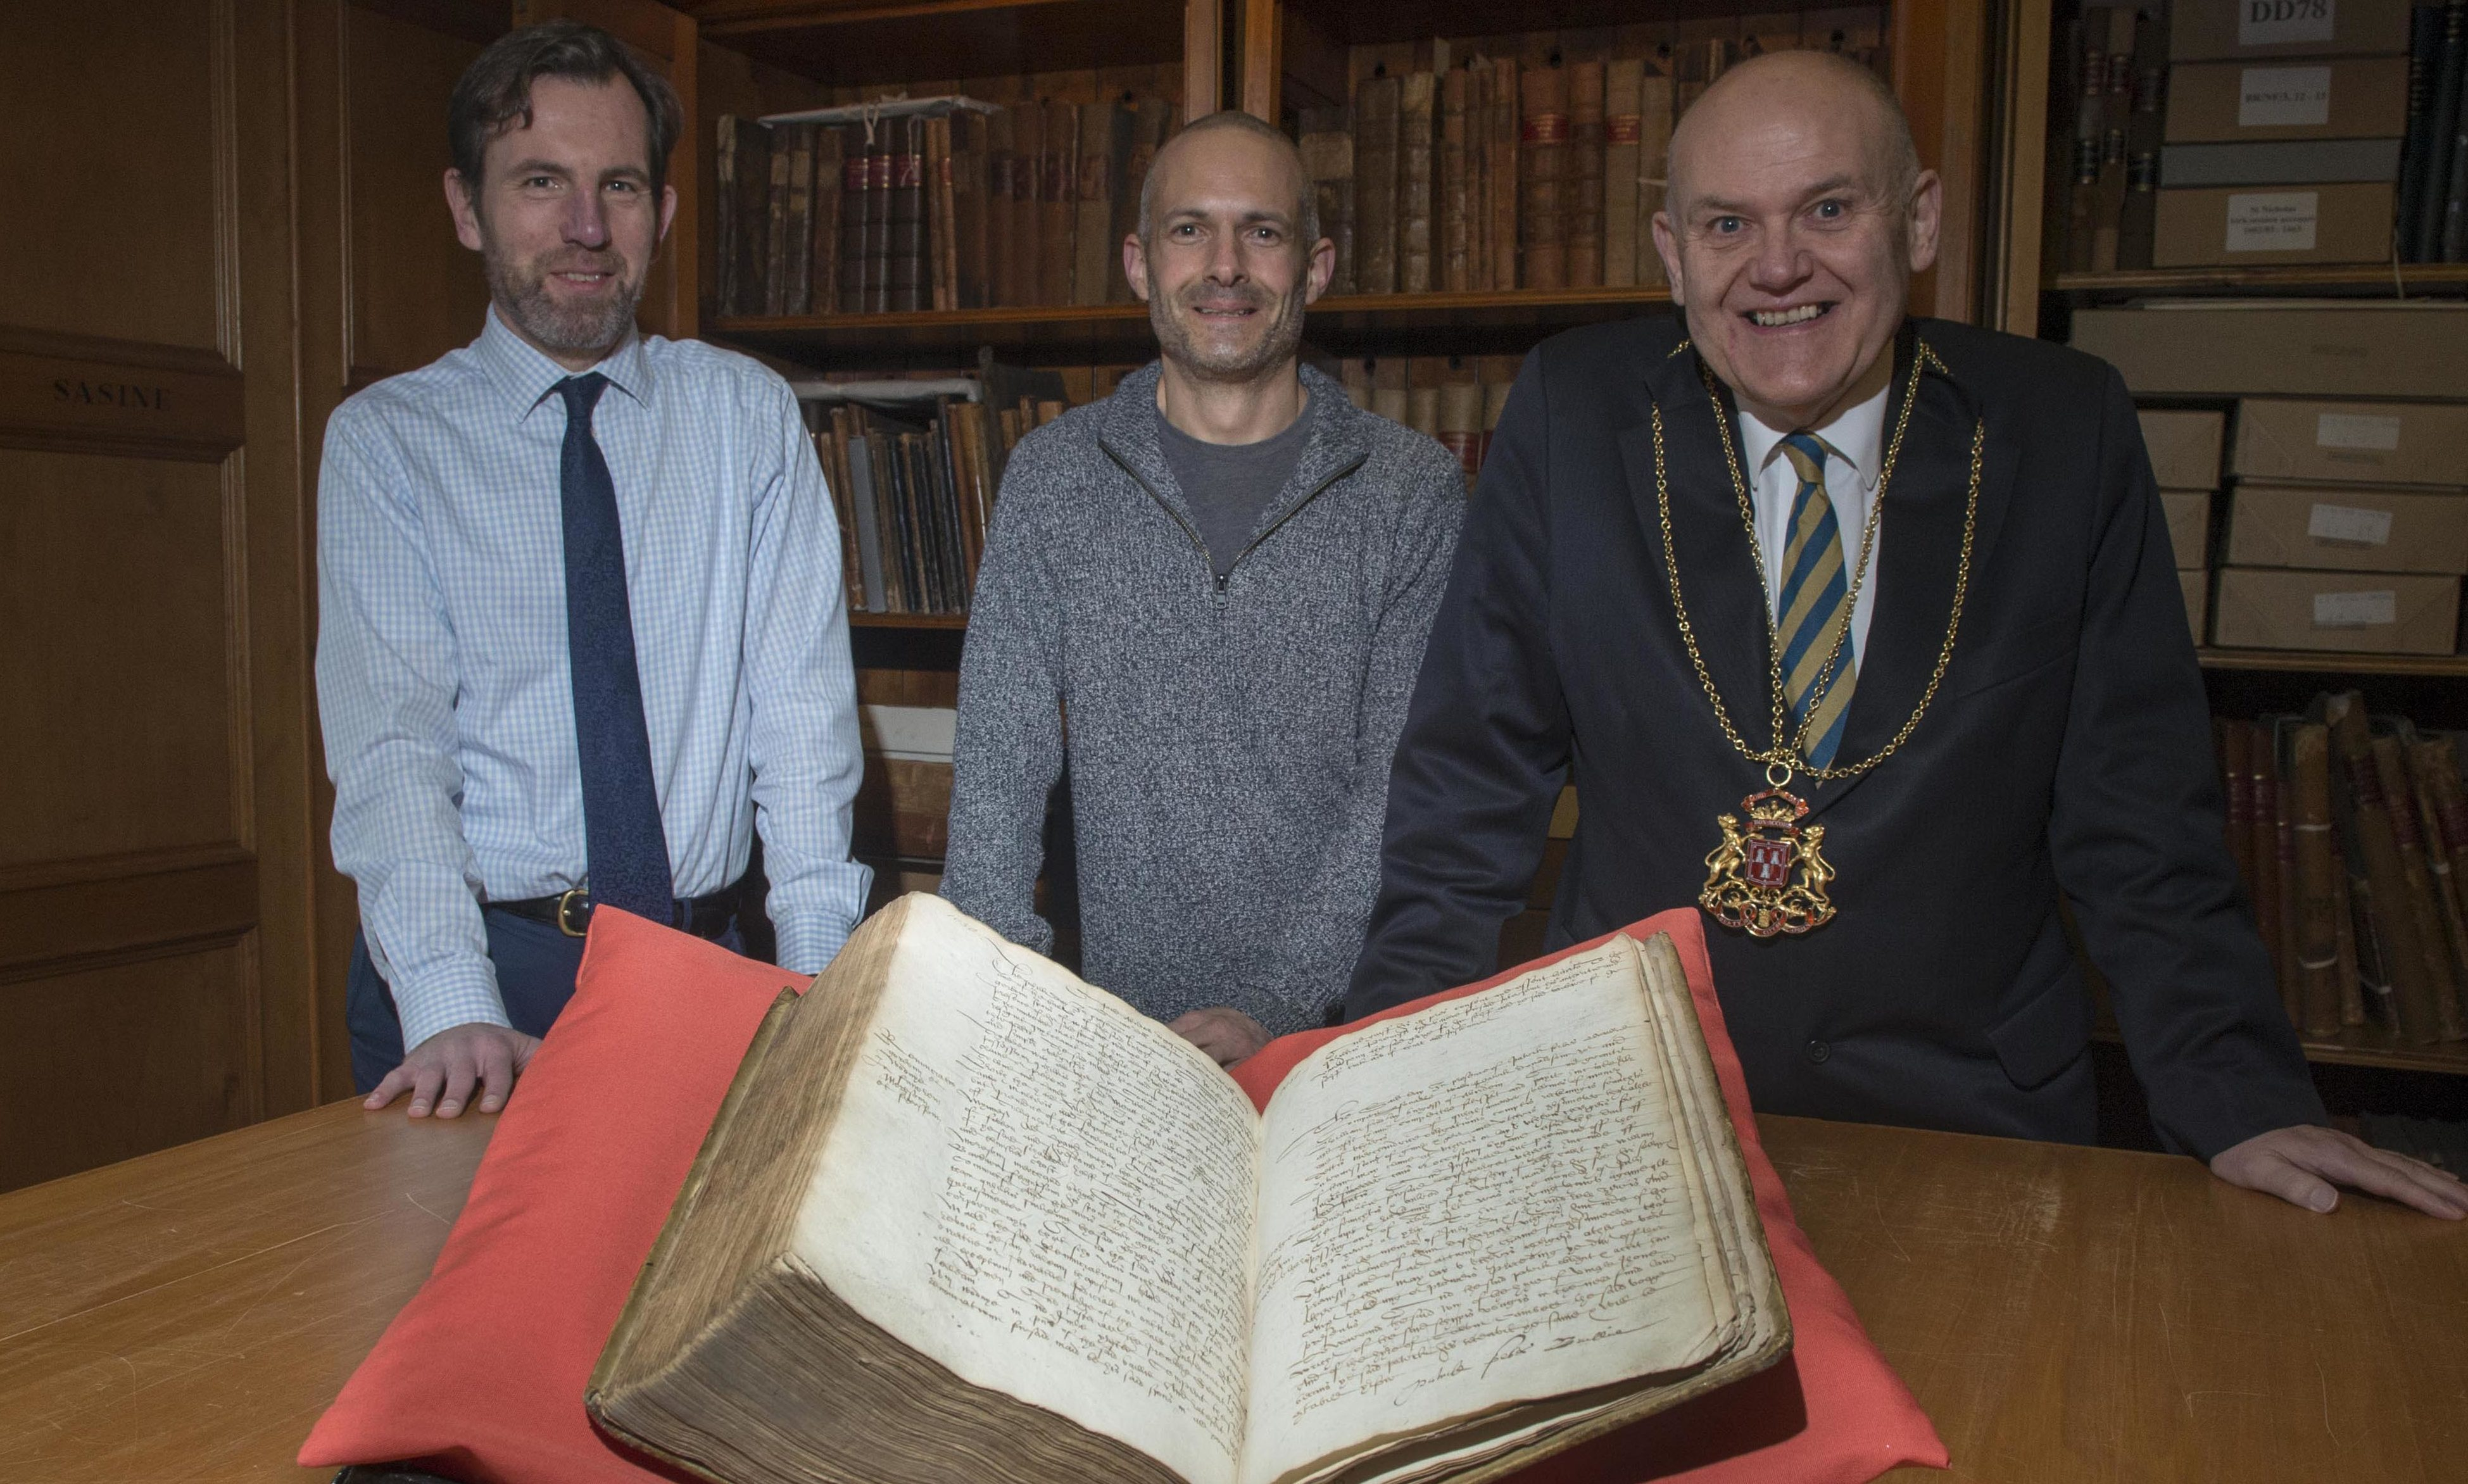 Picture left to right: Phil Astley (Archivist),Thomas Brochard, an Honorary Research Fellow at the University of Aberdeen, Lord Provost Barney Crockett